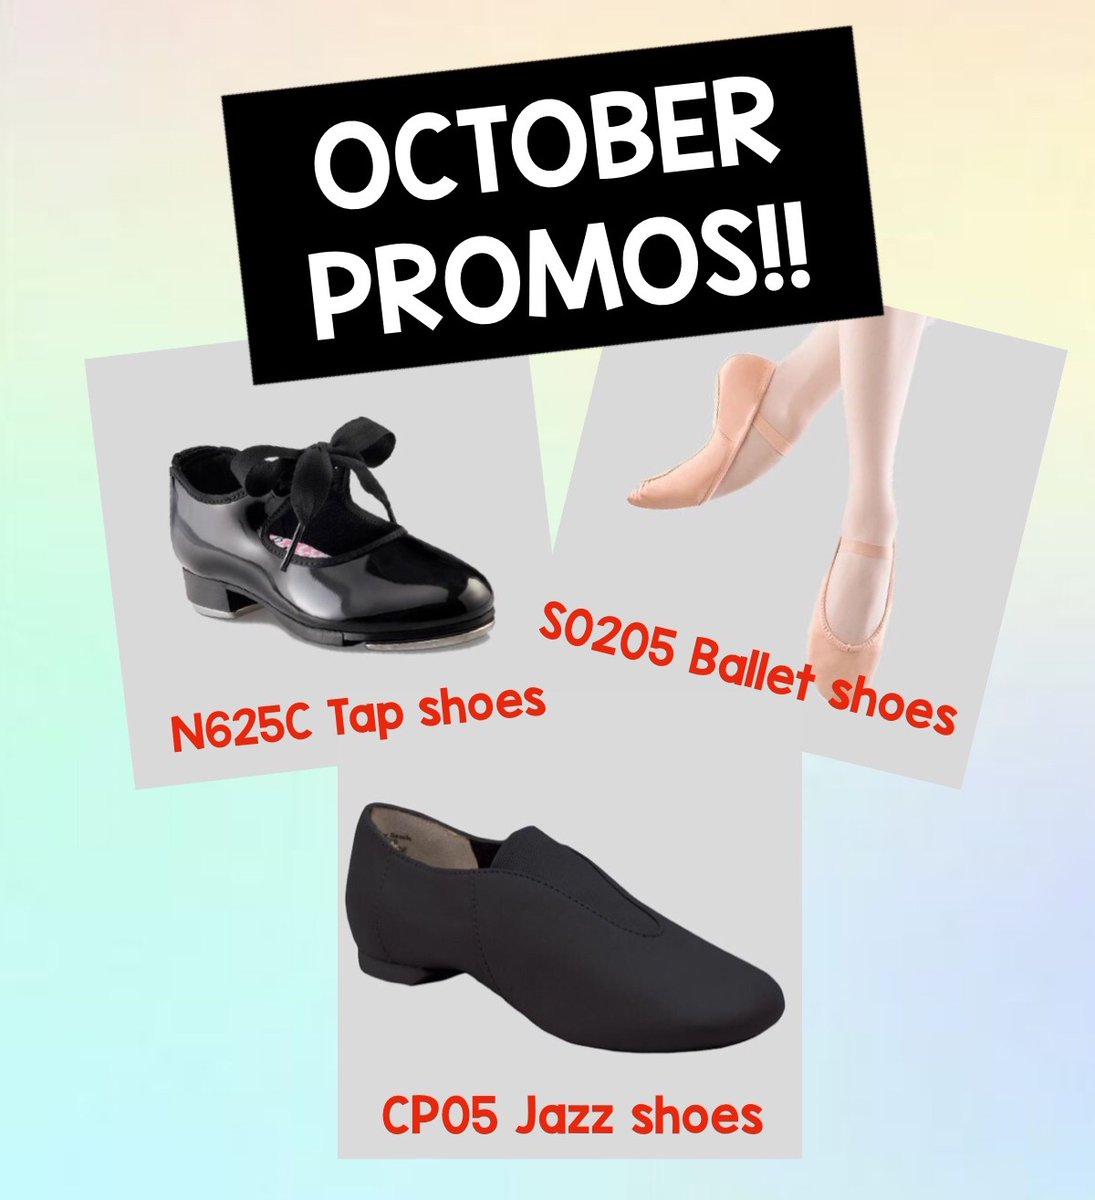 Remember that we've extended our PROMOS until the end of October! Shop now! . #mirenasfashions #dancewear #sale #octobersale #dance #danceshoes #dancelife #lovedance #mississauga #toronto #oakville #brampton #onestepahead https://t.co/sqEudlQzpV